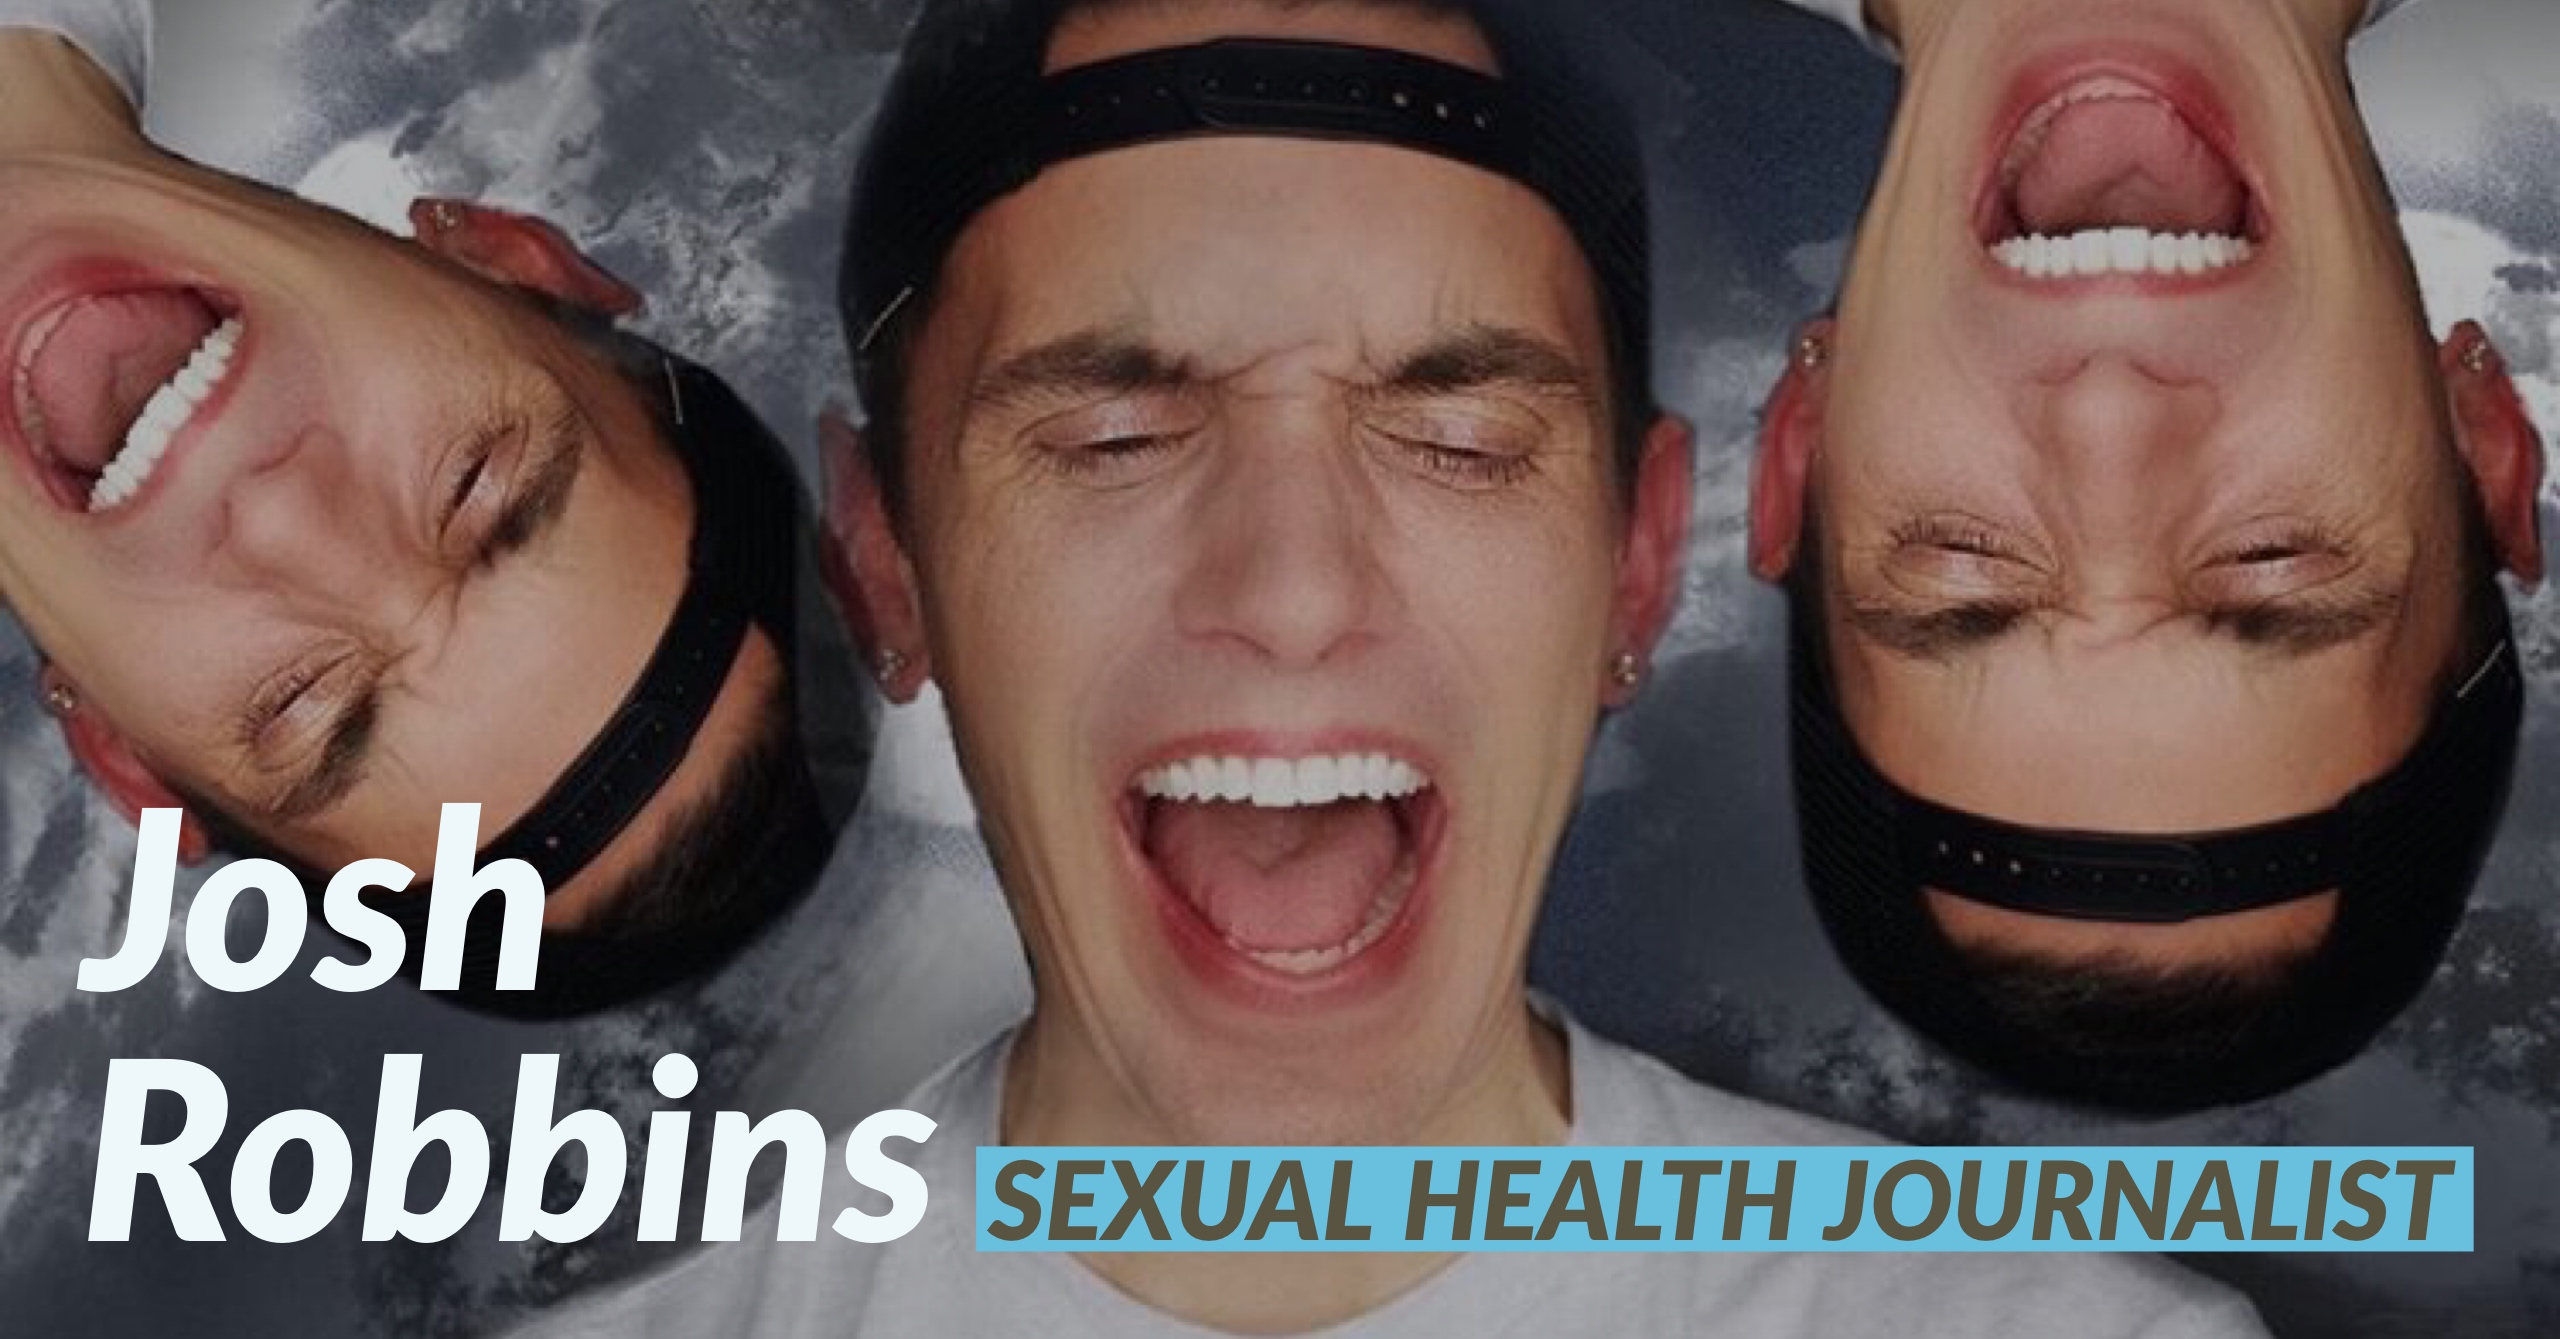 HIV journalist josh robbins